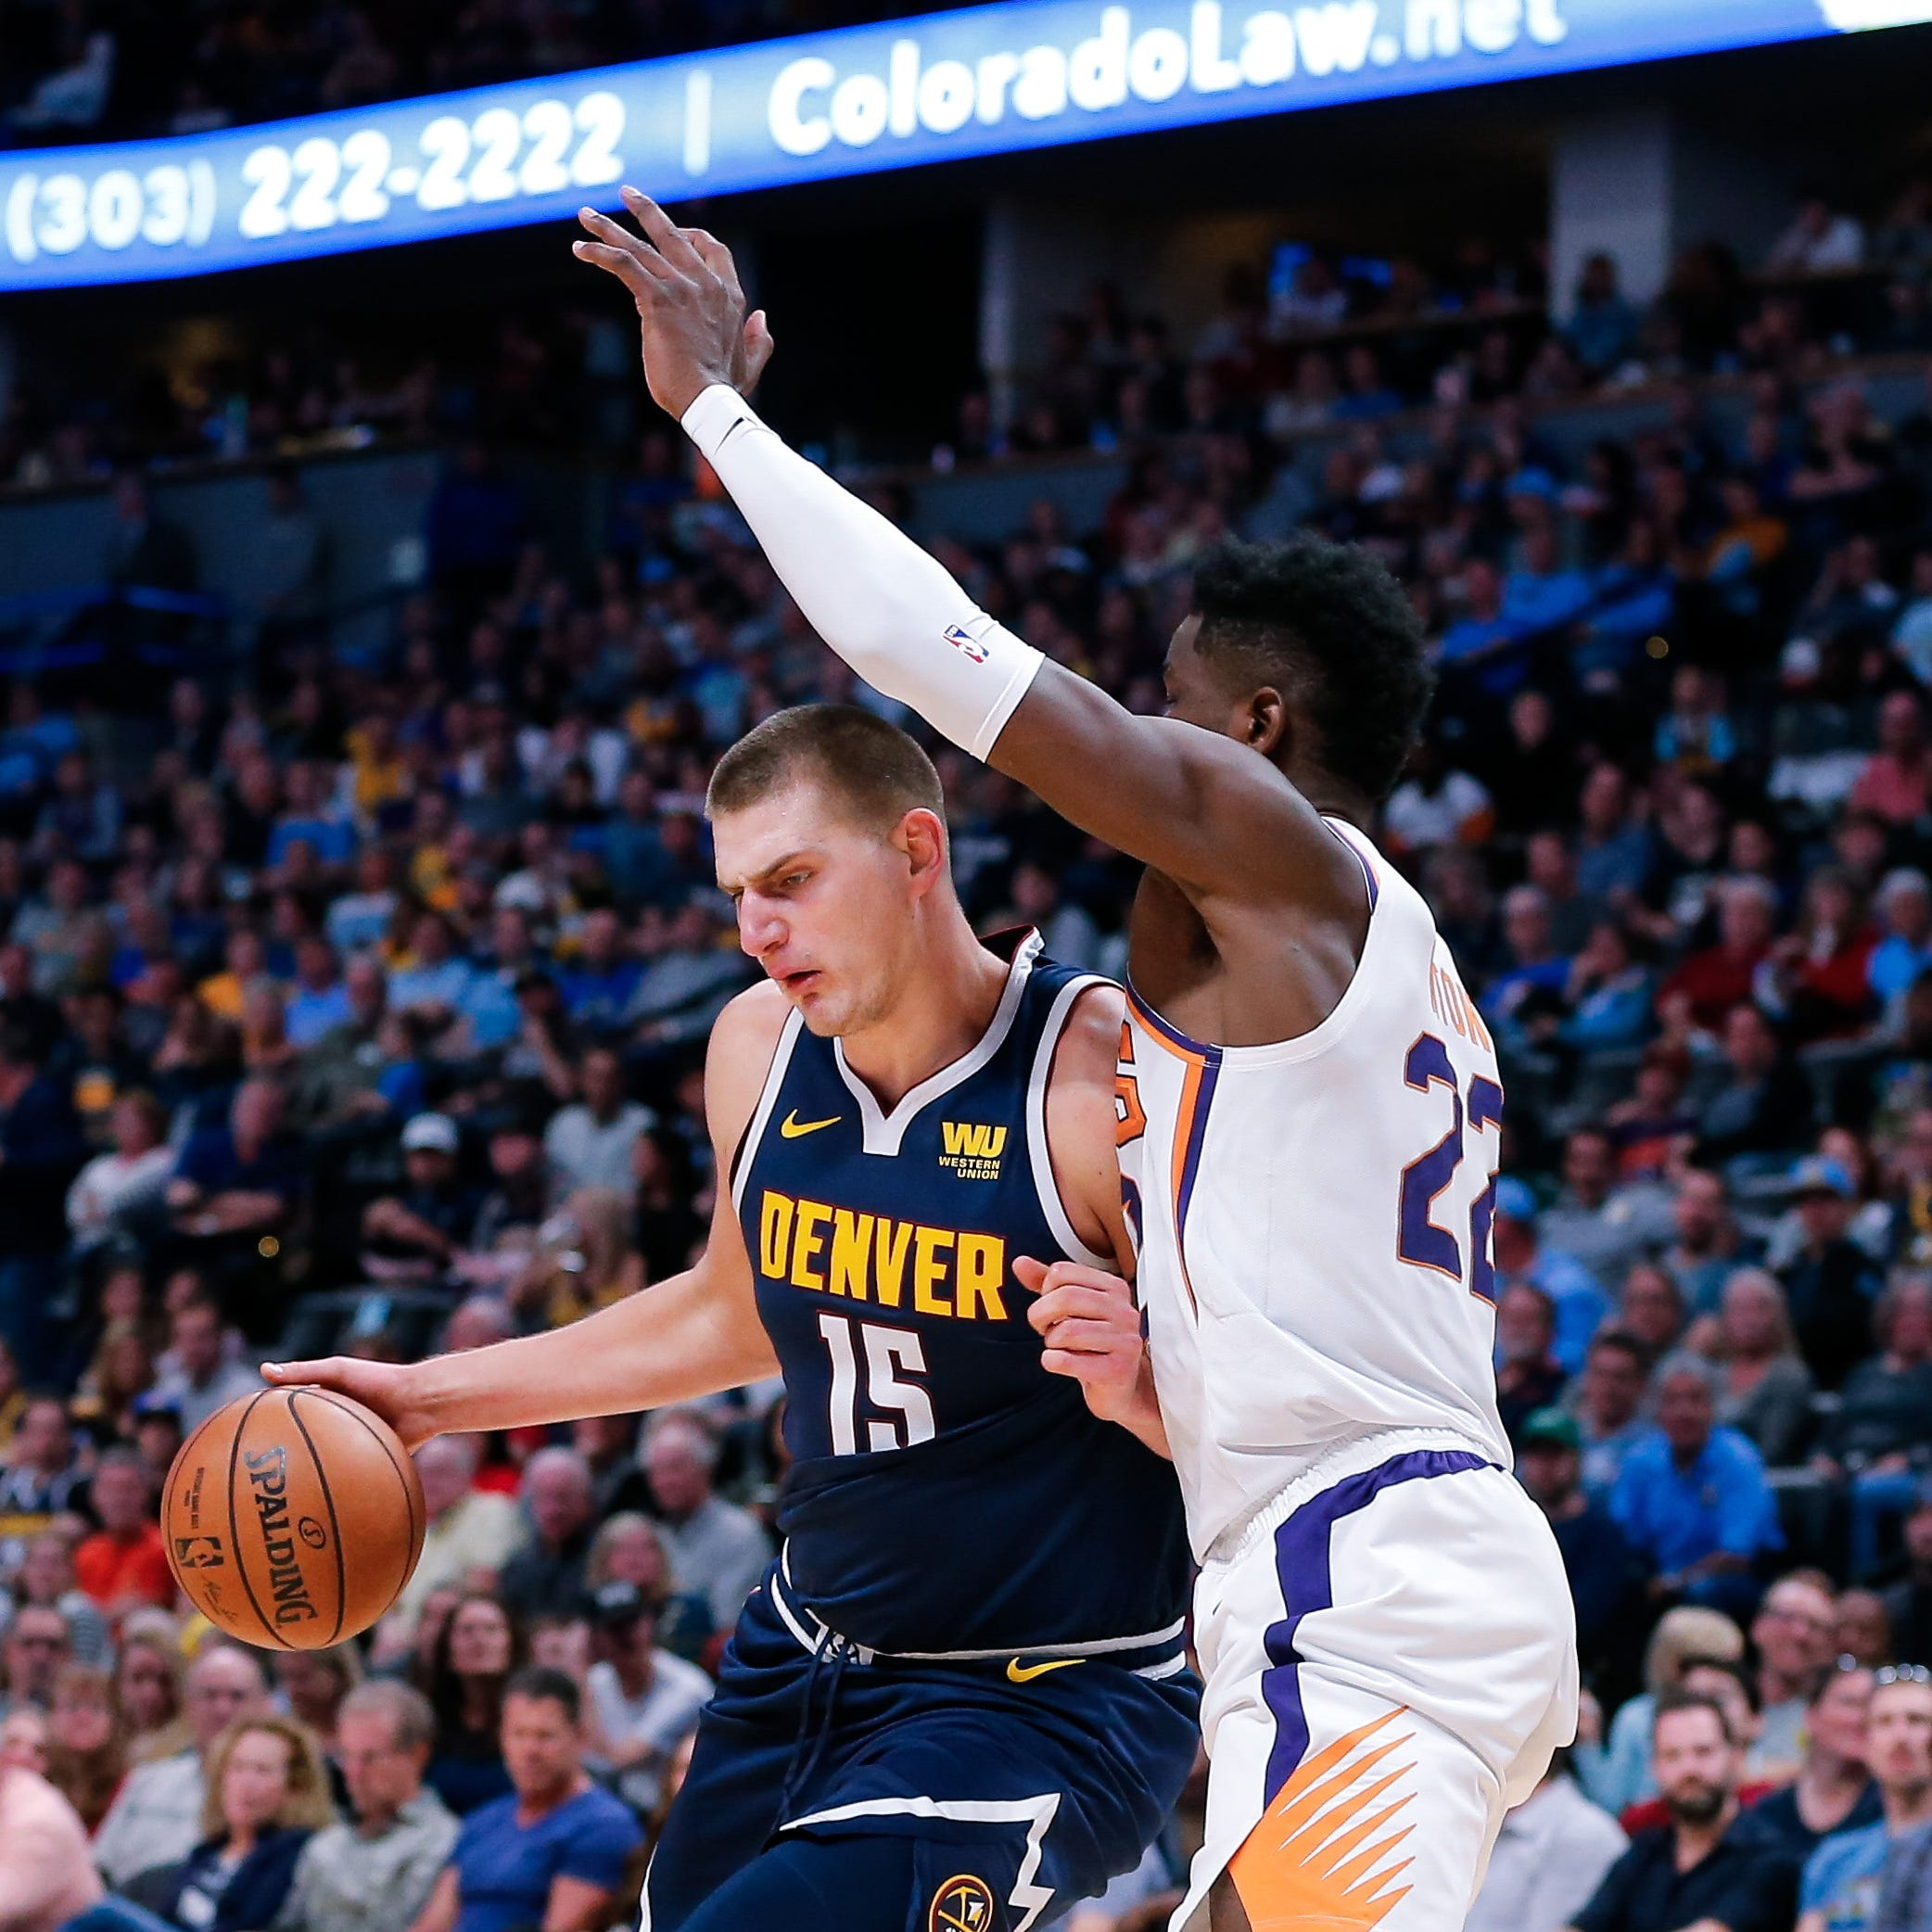 Lesson learned: Nikola Jokic shows Deandre Ayton how it's done in Suns' loss at Denver